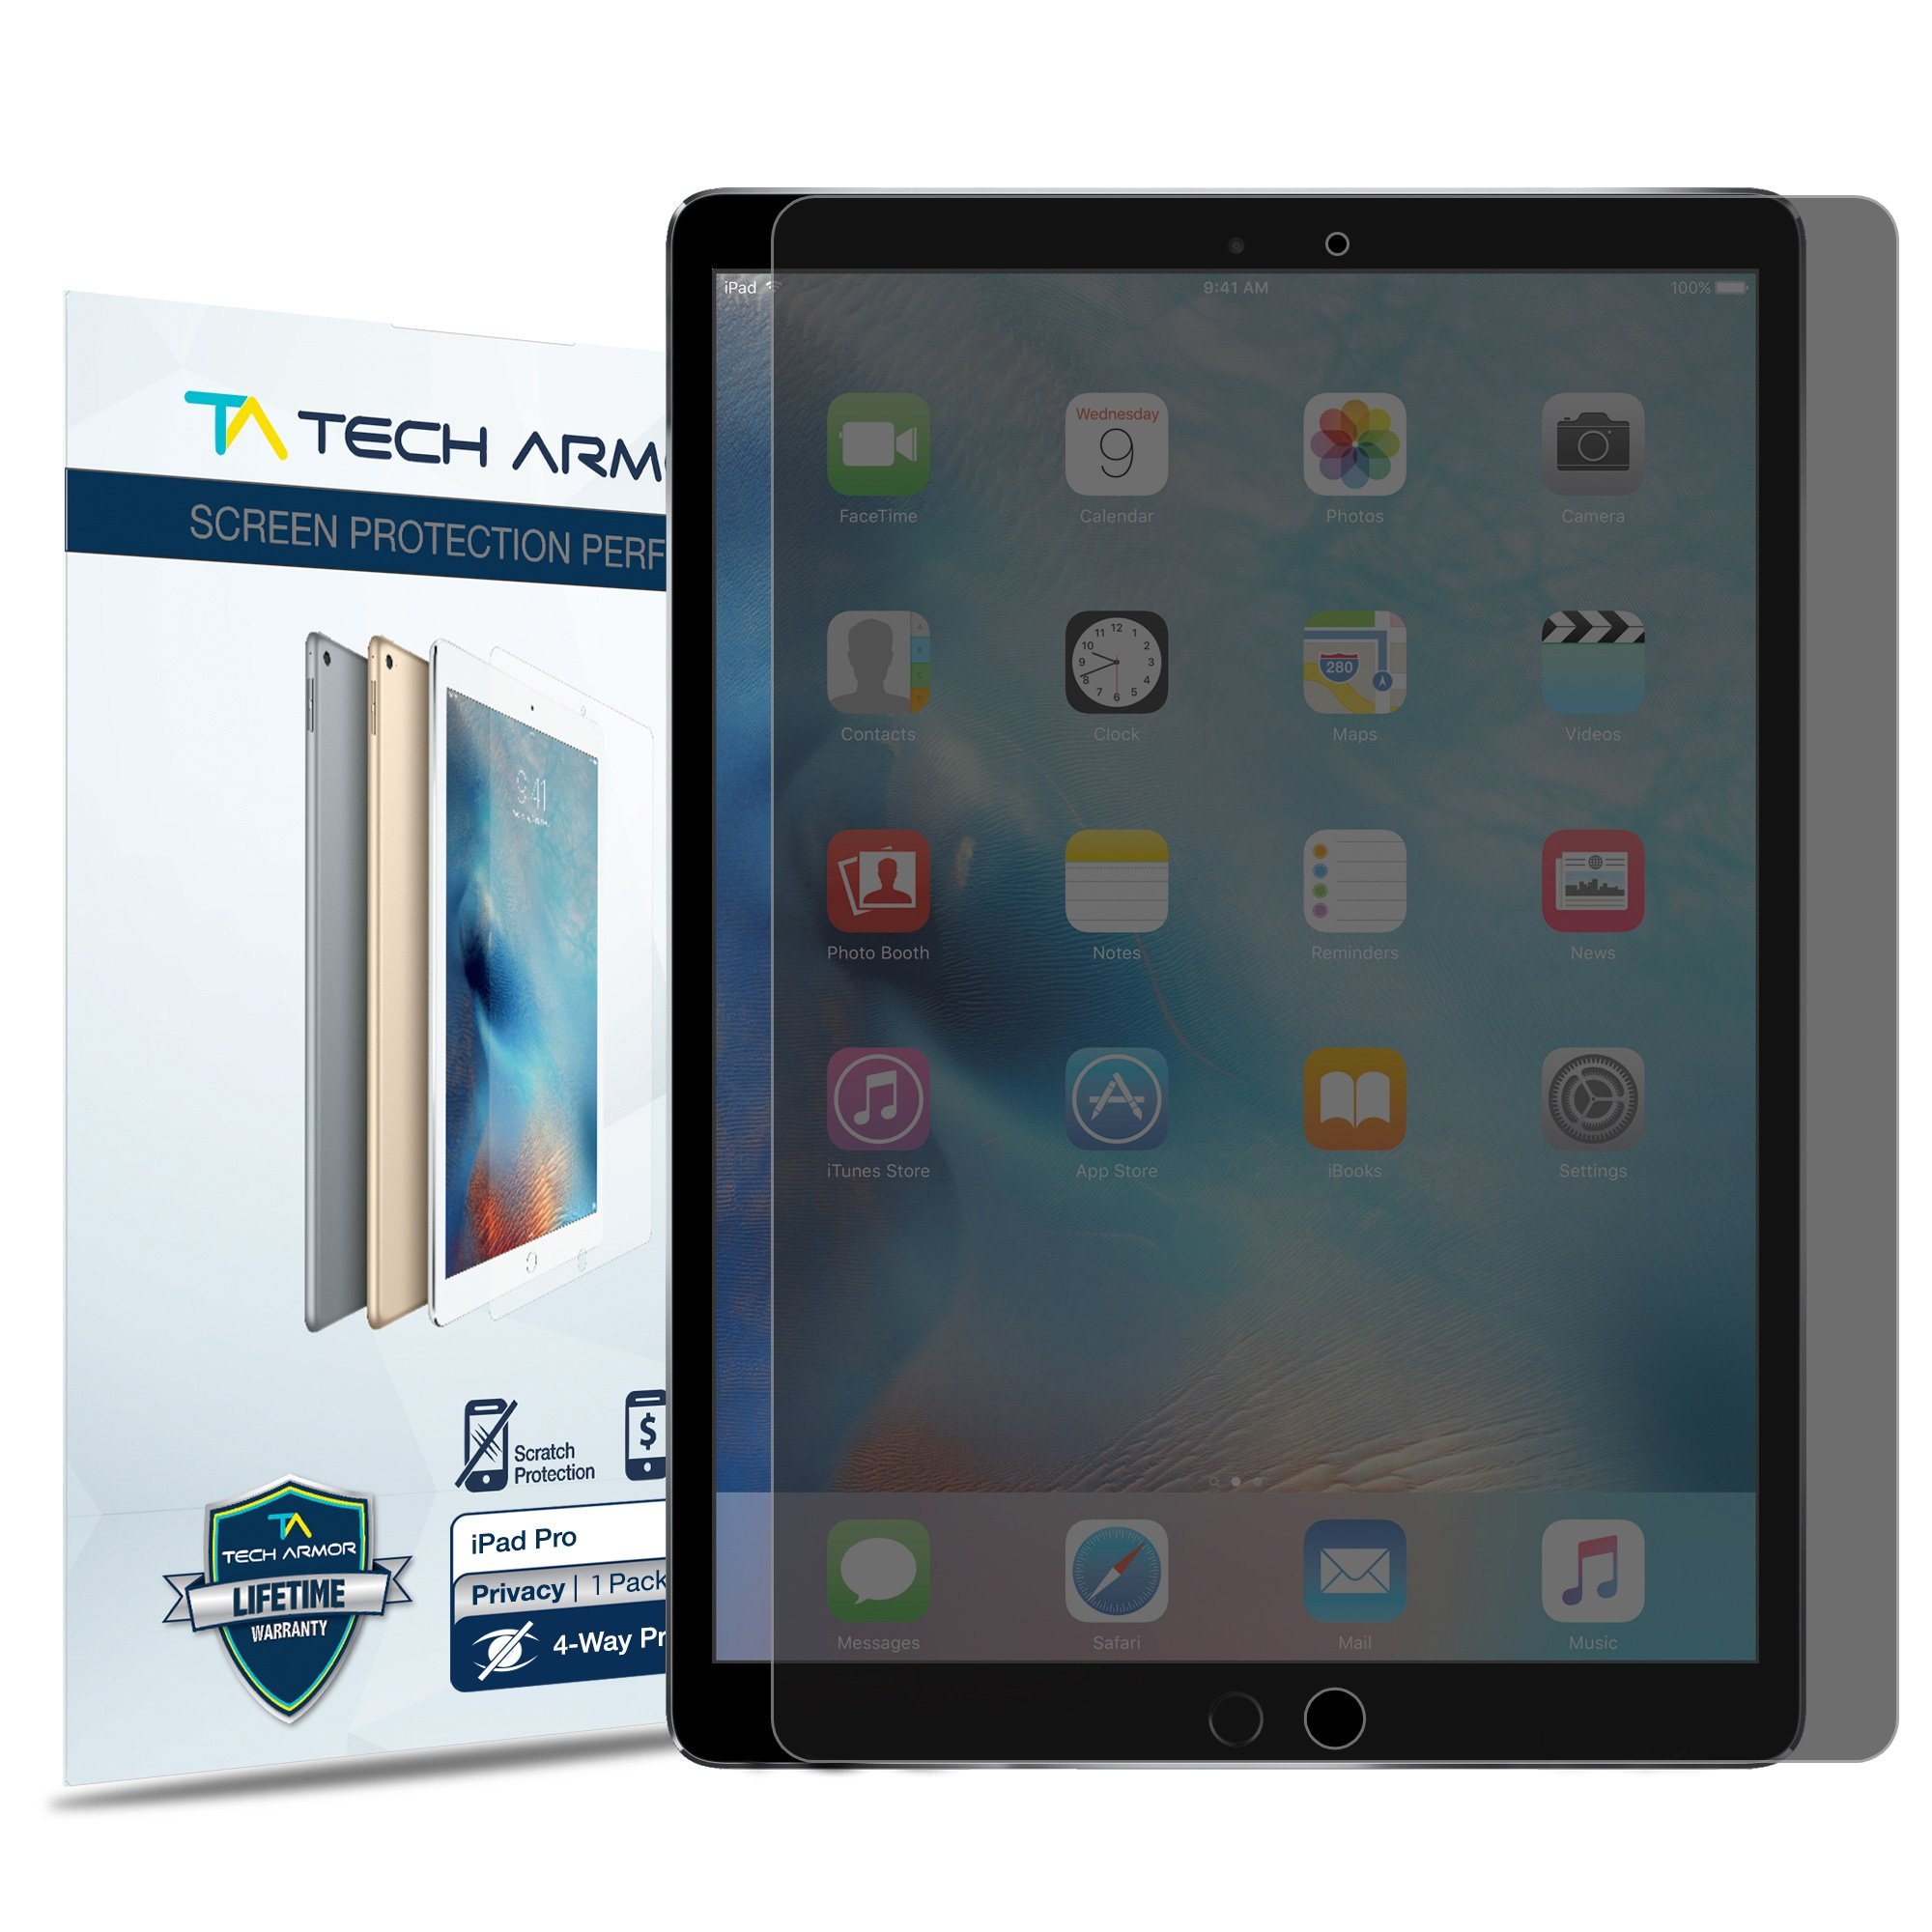 Tech Armor iPad Pro (12.9'') Privacy Screen Protector, 4Way 360 Degree Privacy Apple iPad Pro 12.9-inch Film Screen Protector [1-Pack]